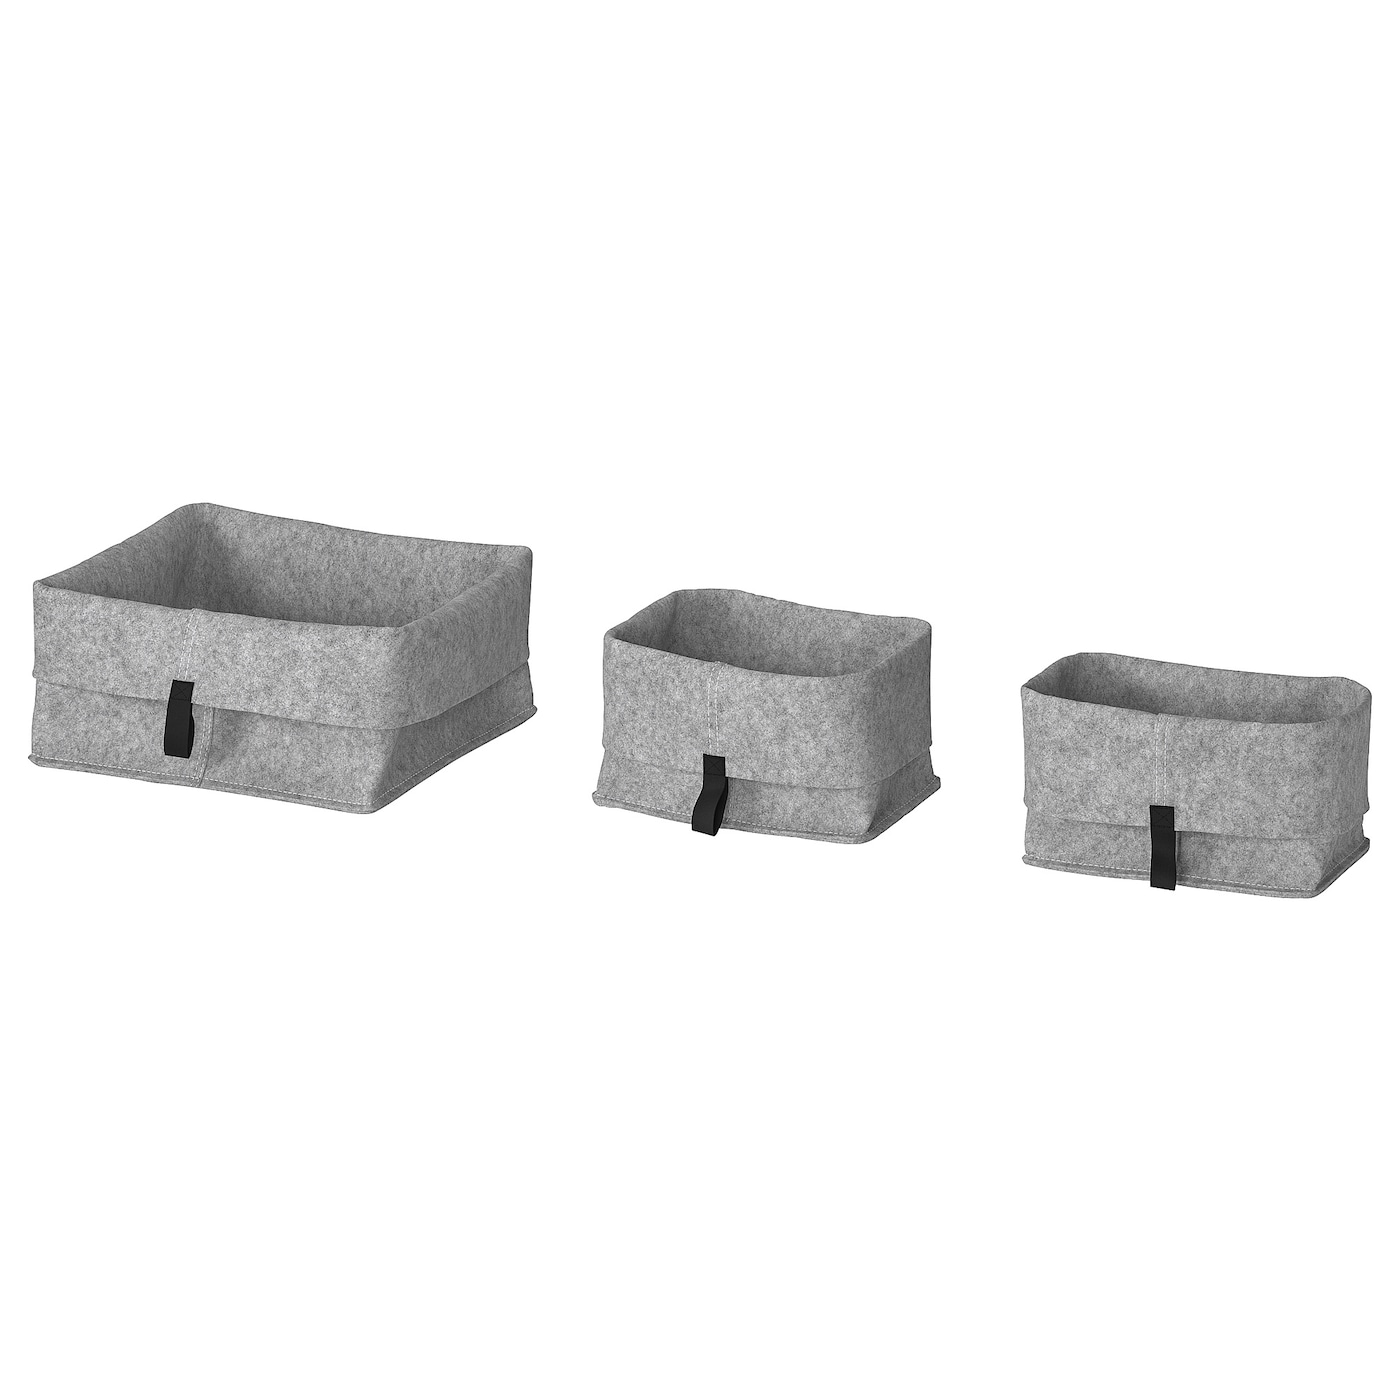 IKEA RAGGISAR basket, set of 3 Perfect for everything from smaller items to clothes.